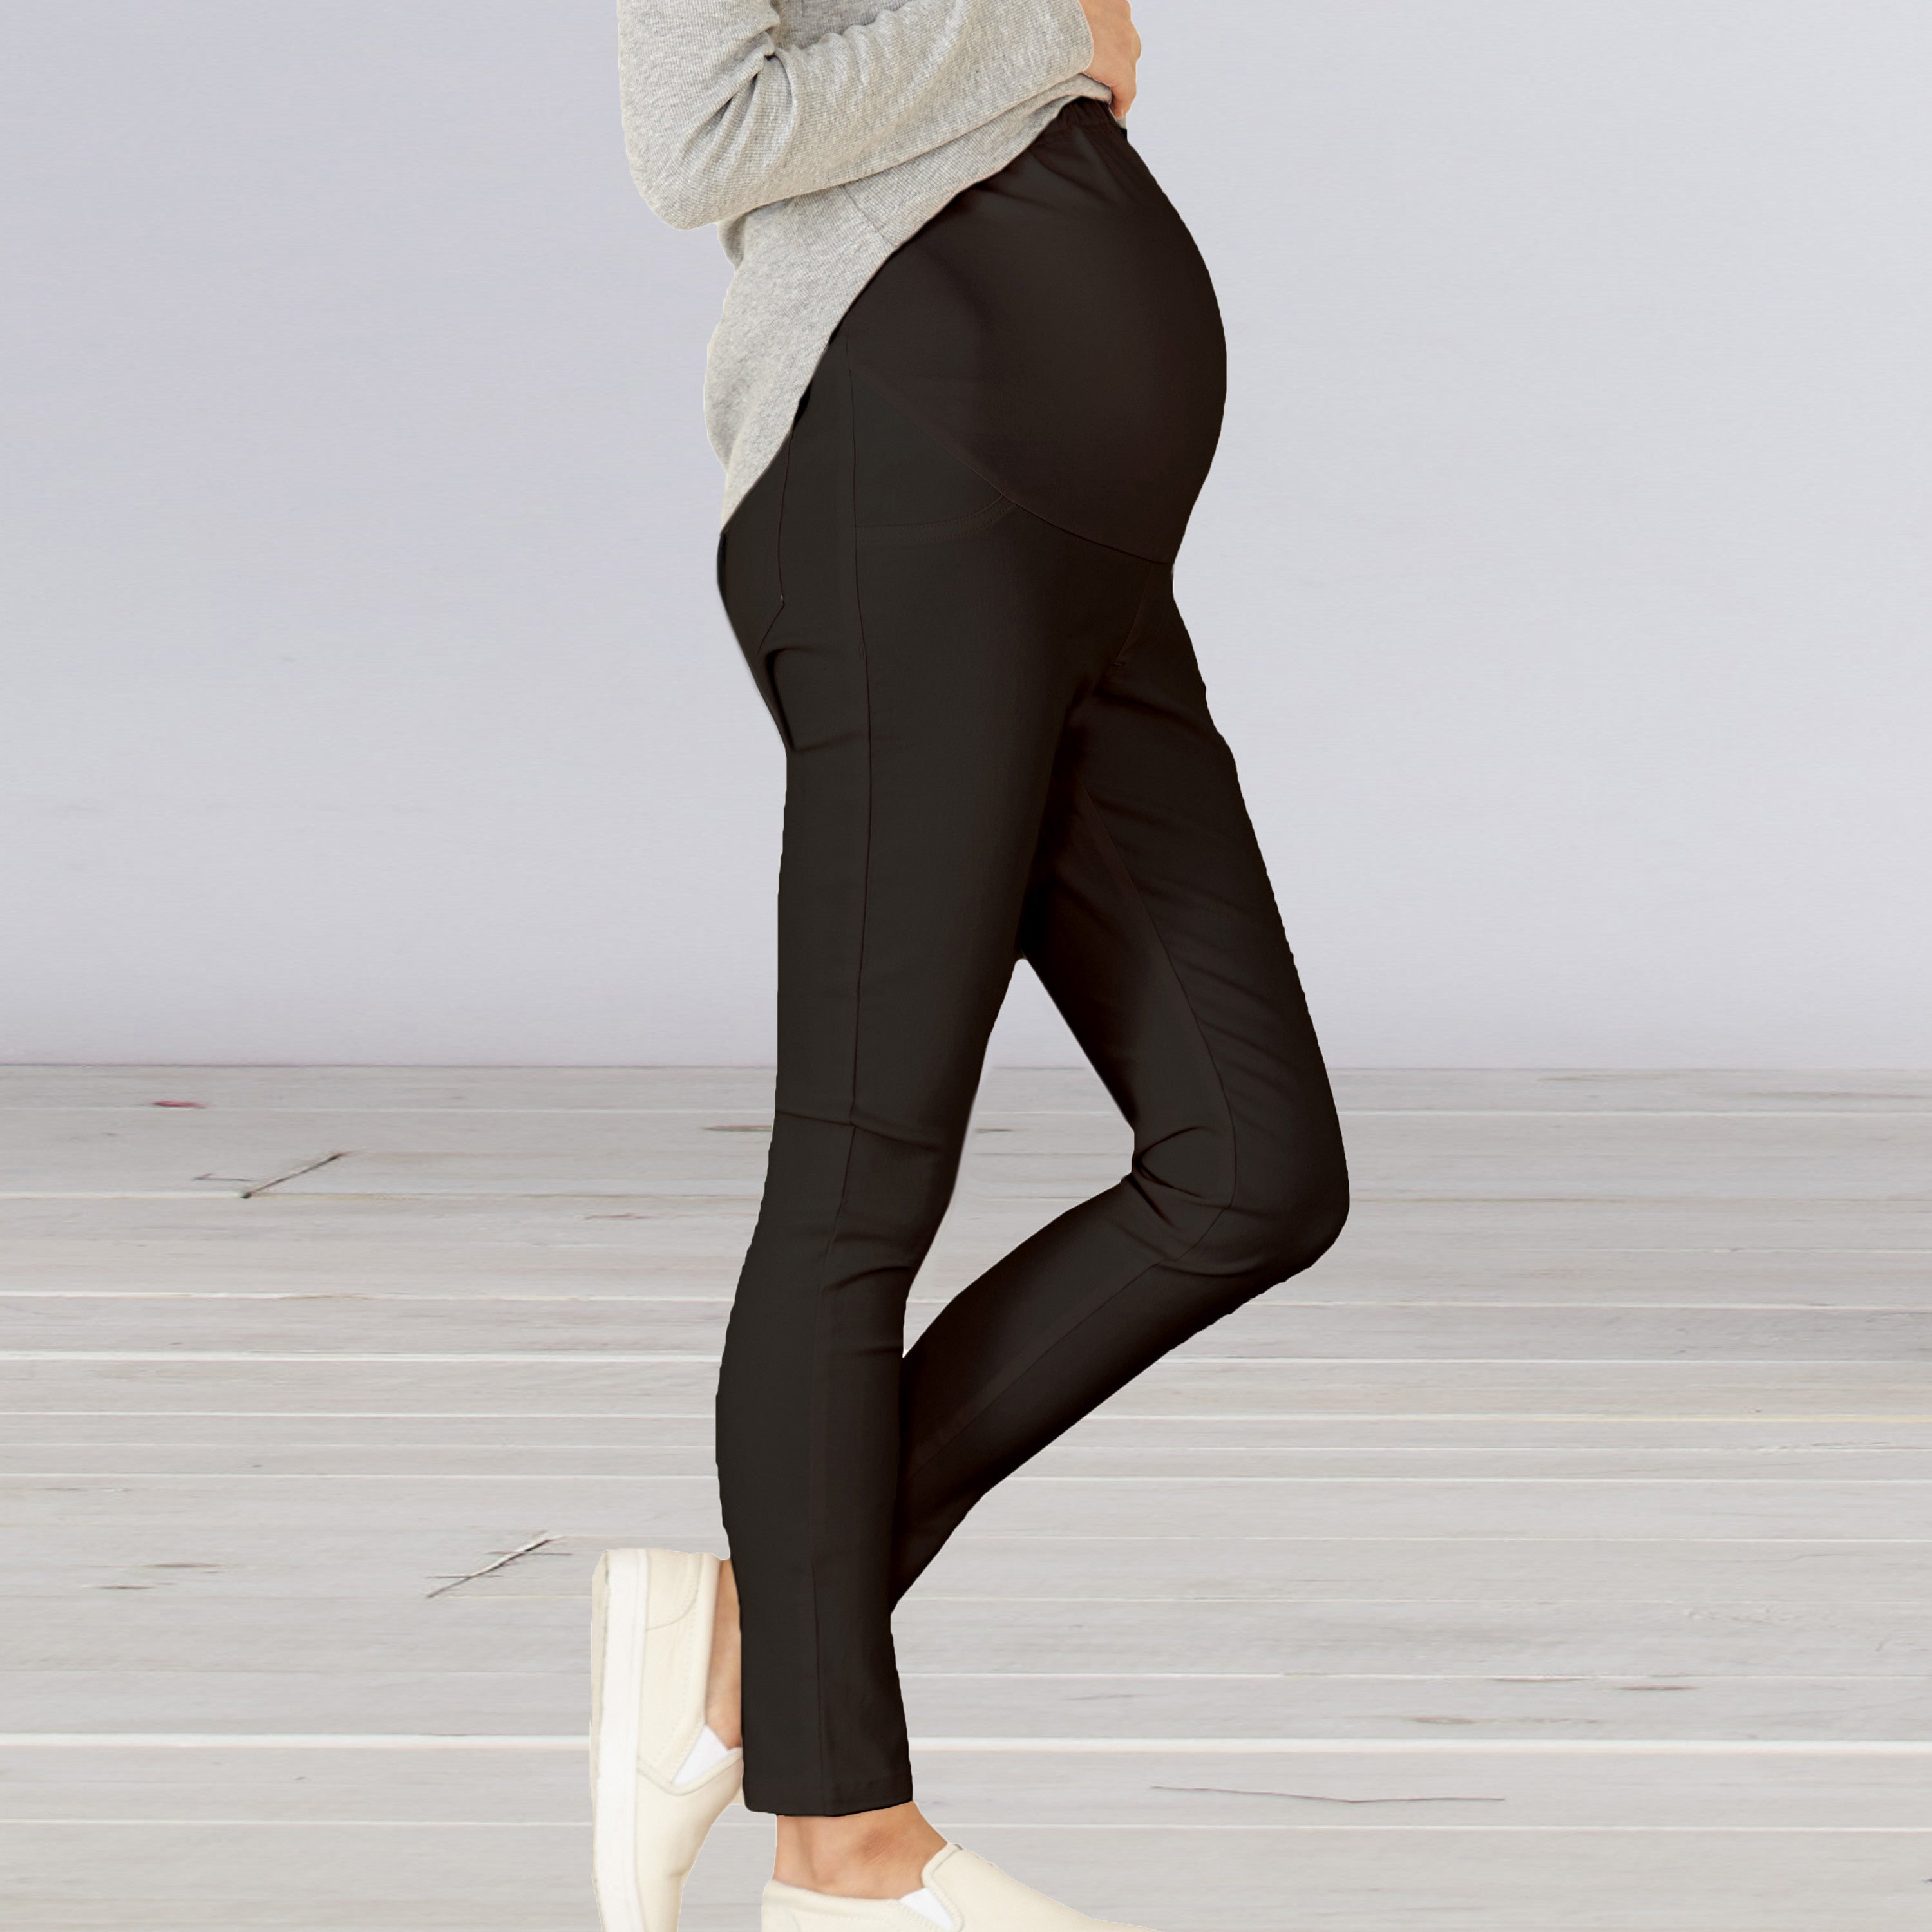 BEST SELLING HIGH WAIST Maternity/ Pregnancy Skinny Stretchy Pants with Belly Poach